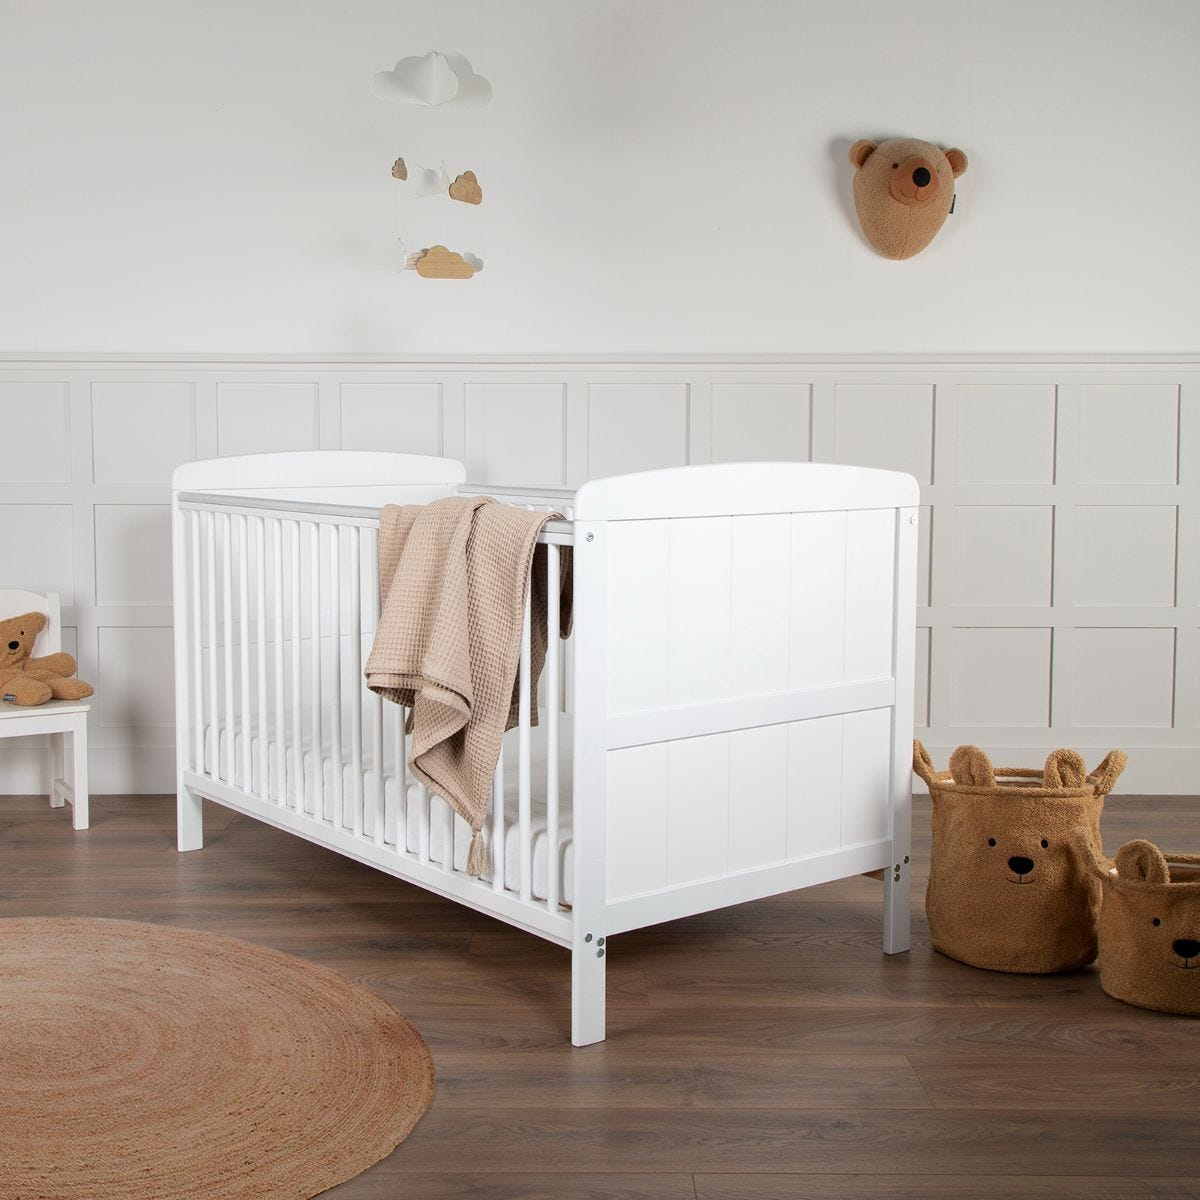 CuddleCo Juliet Cot Bed with Mother & Baby First Gold Foam Mattress White